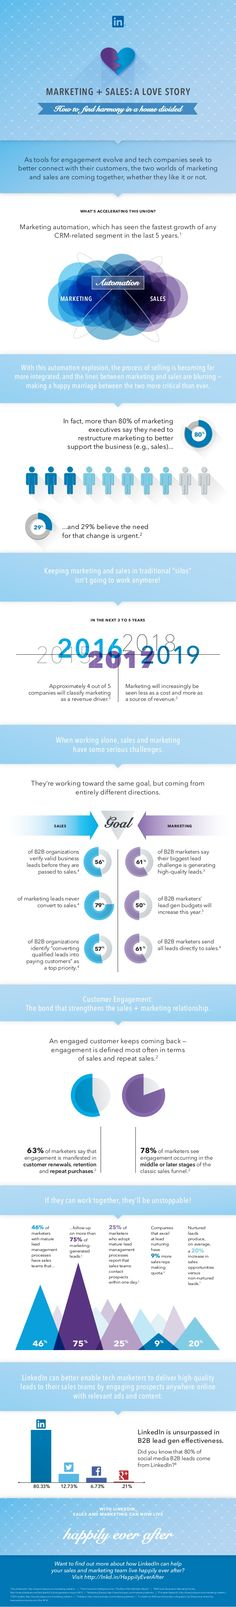 LinkedIn Marketing + Sales: A Love Story [Infographic] #marketing #automation #socialchannels